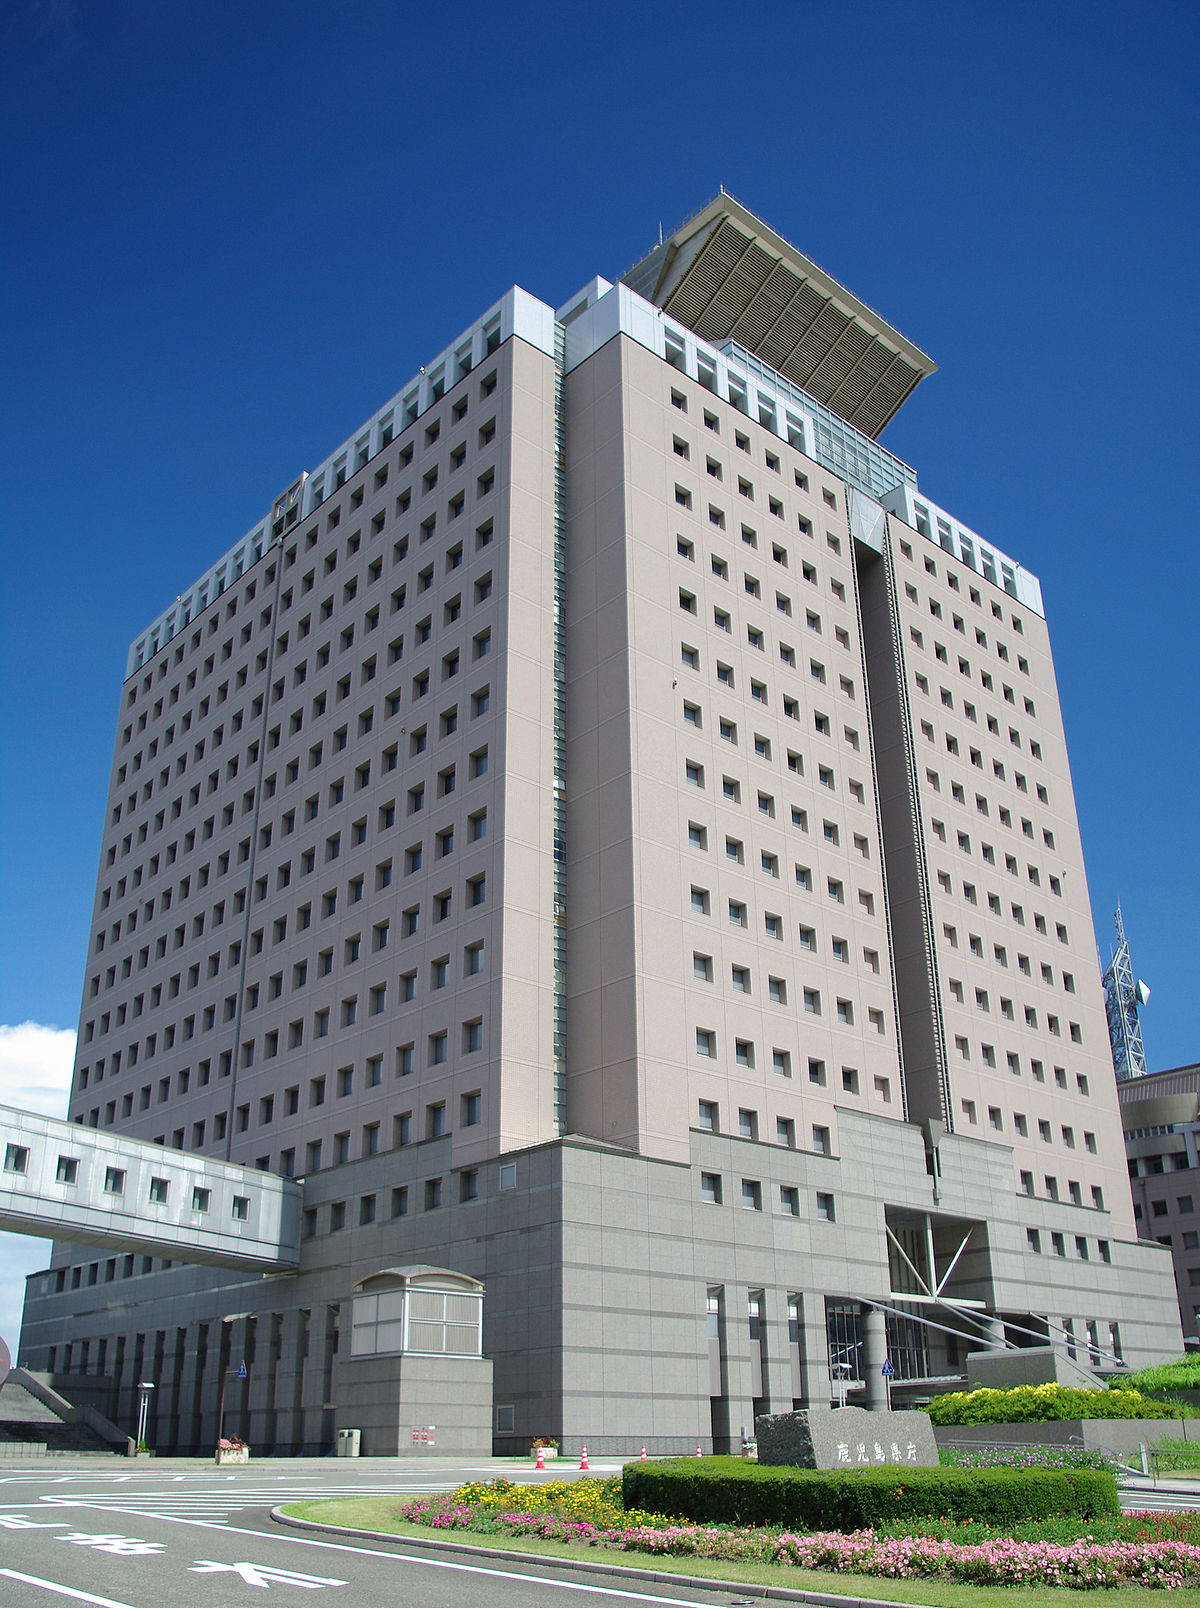 kagoshima prefectural government building wikipedia